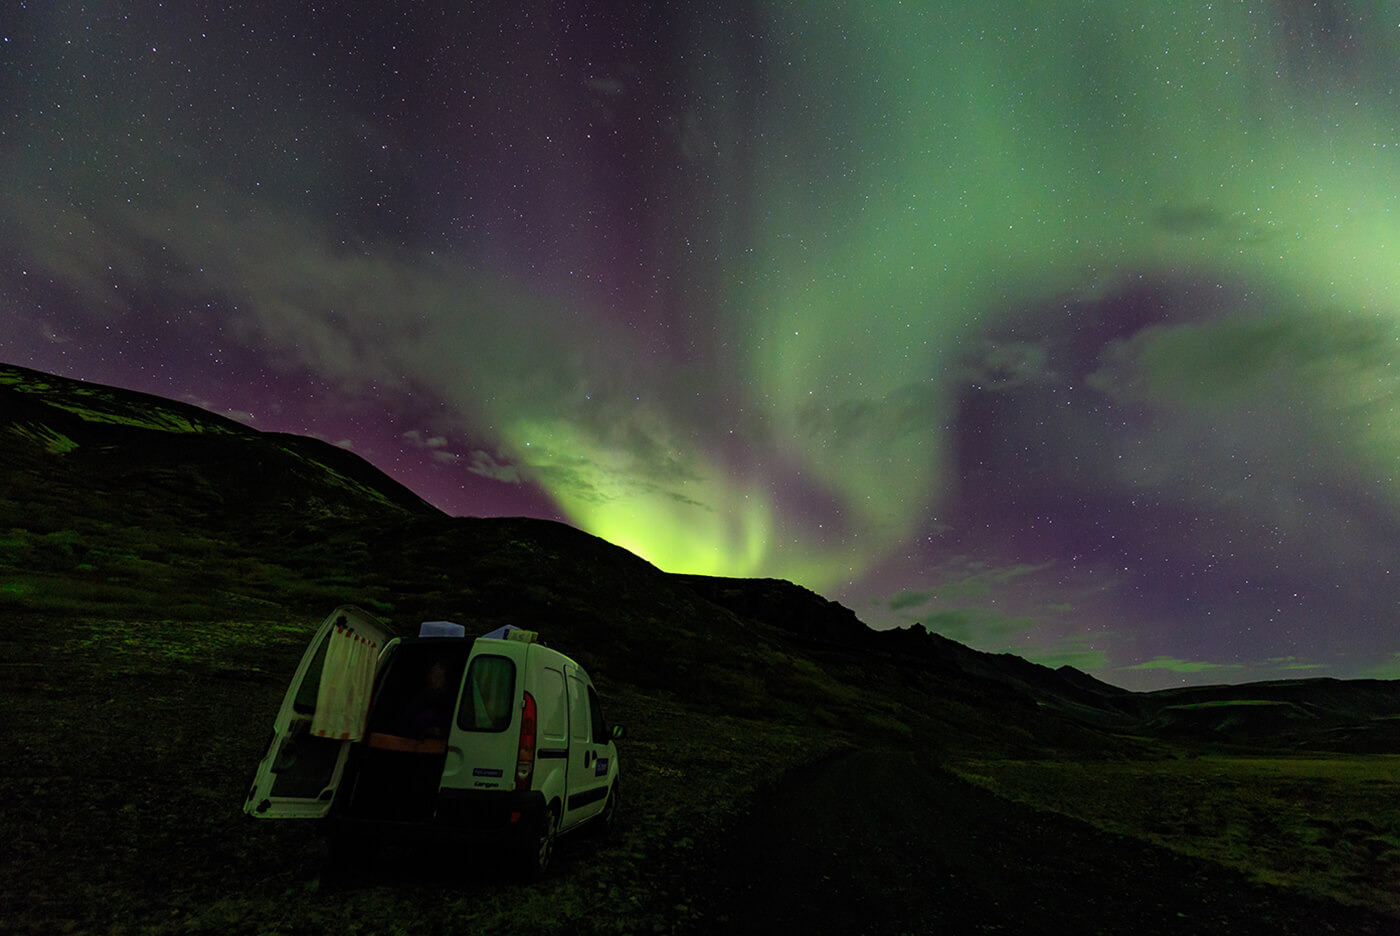 Image of Northern lights taken by photographer Mitch Pearson Coff